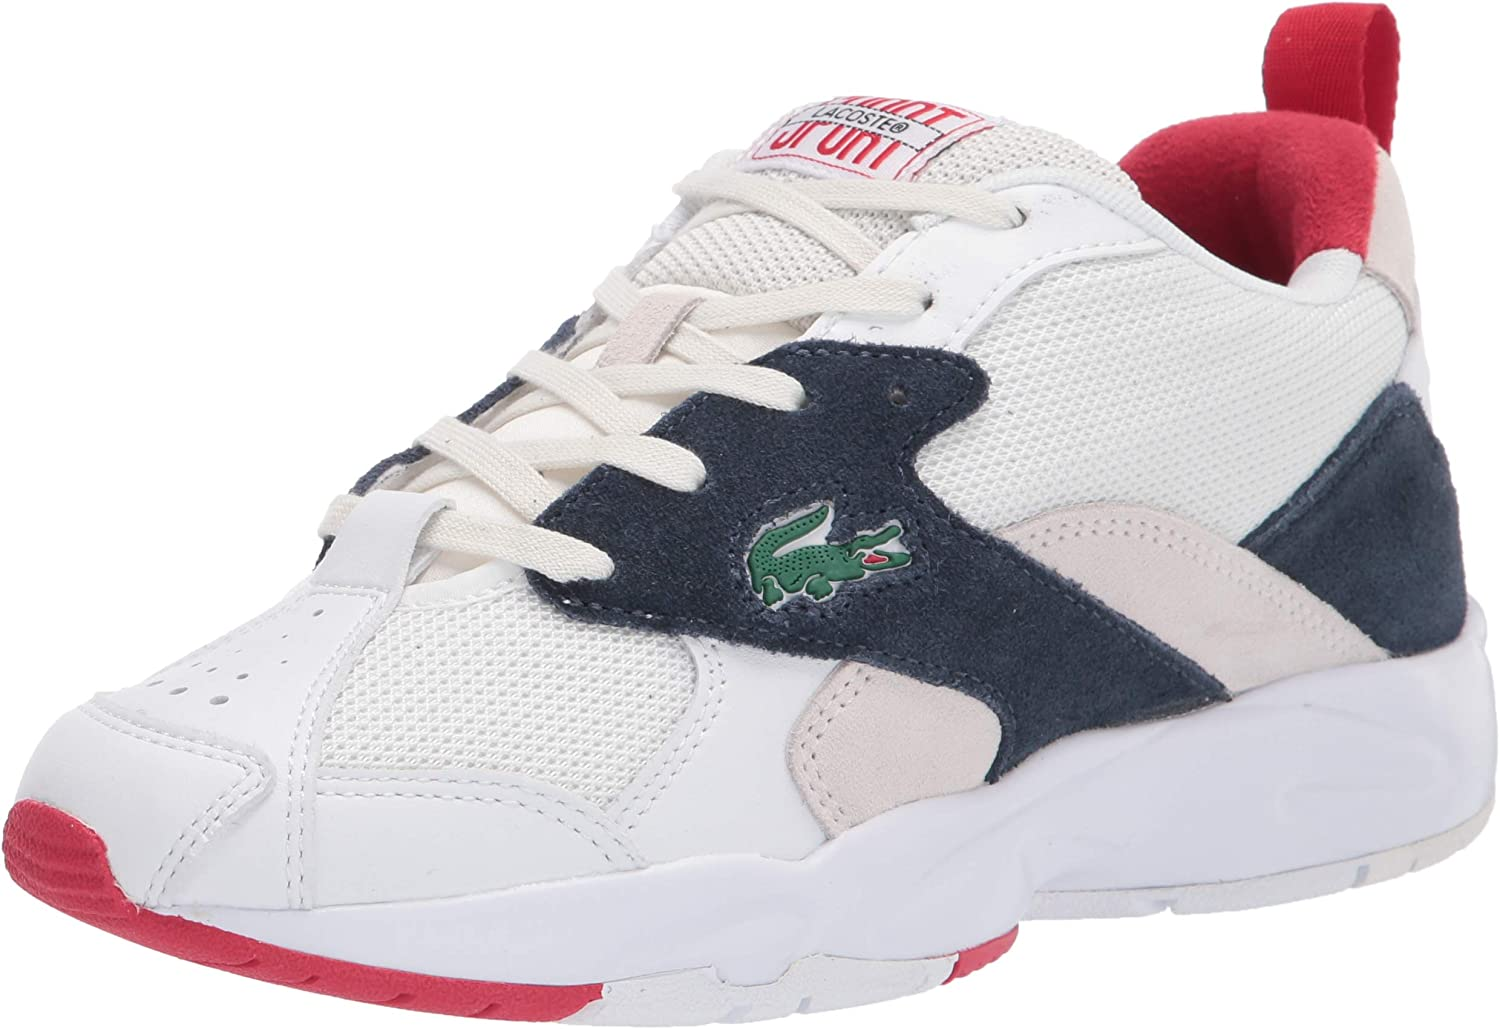 NEW before selling Lacoste Men's Storm Sneaker 96 Super sale period limited